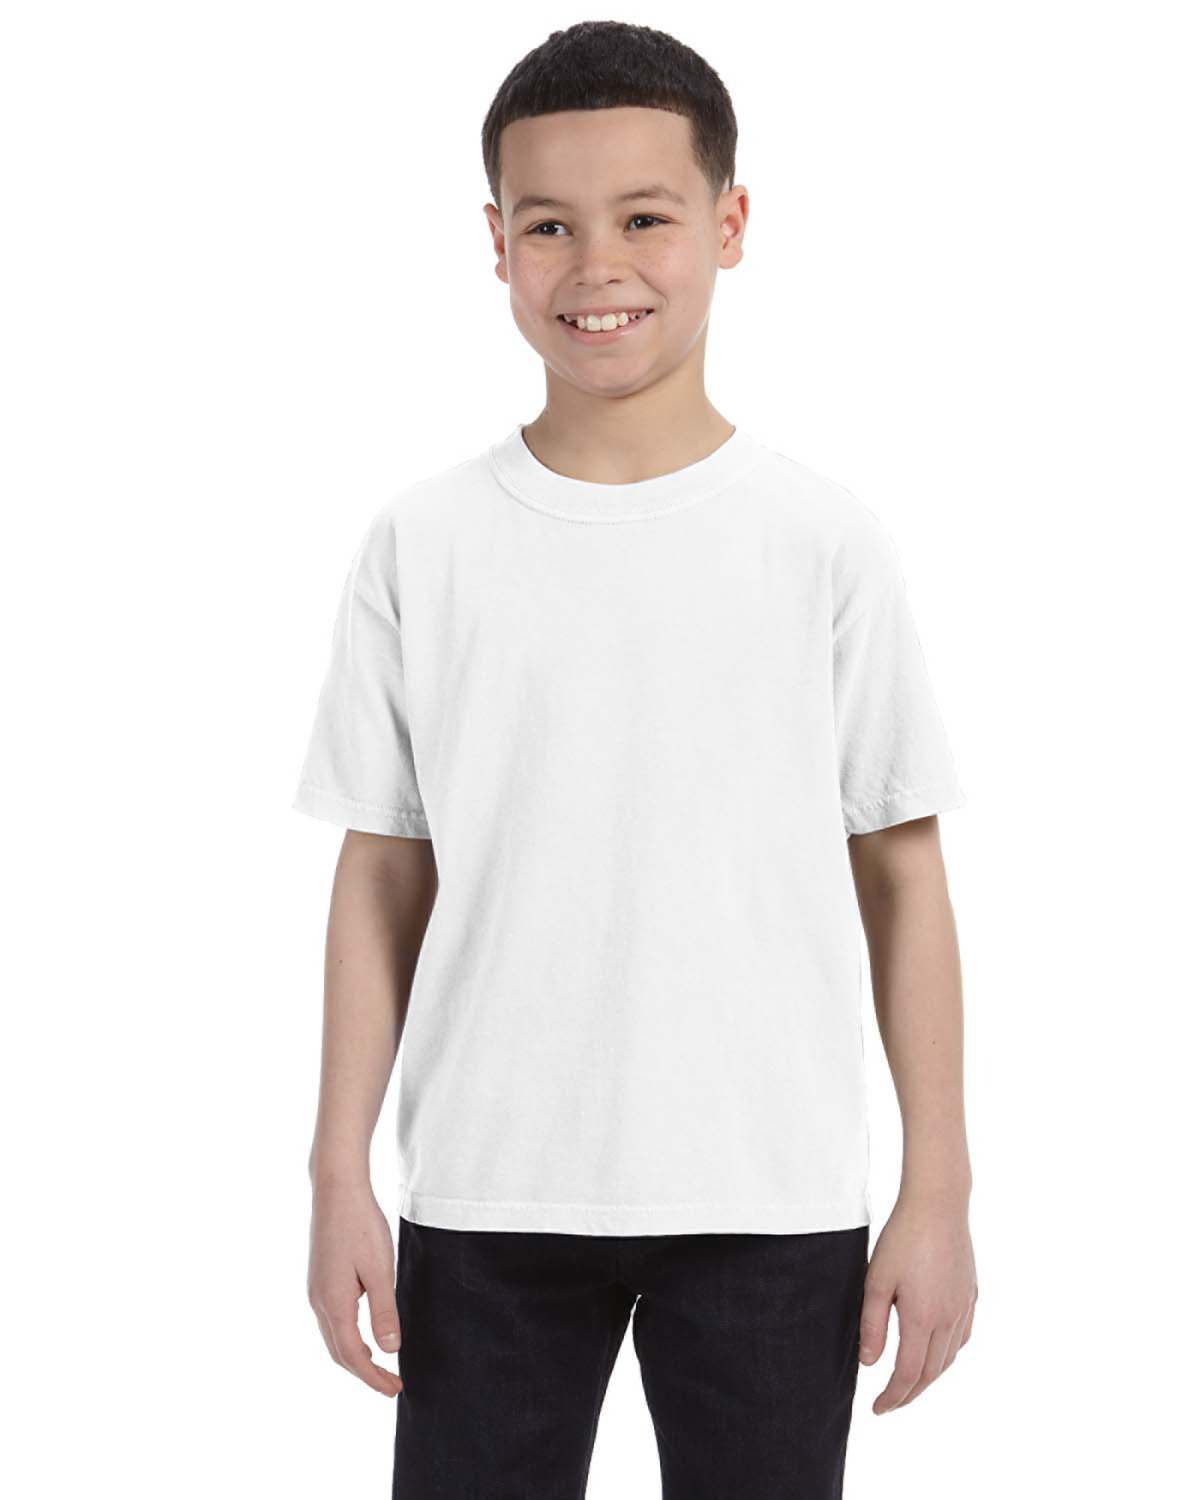 Youth Midweight Ringspun T-Shirt